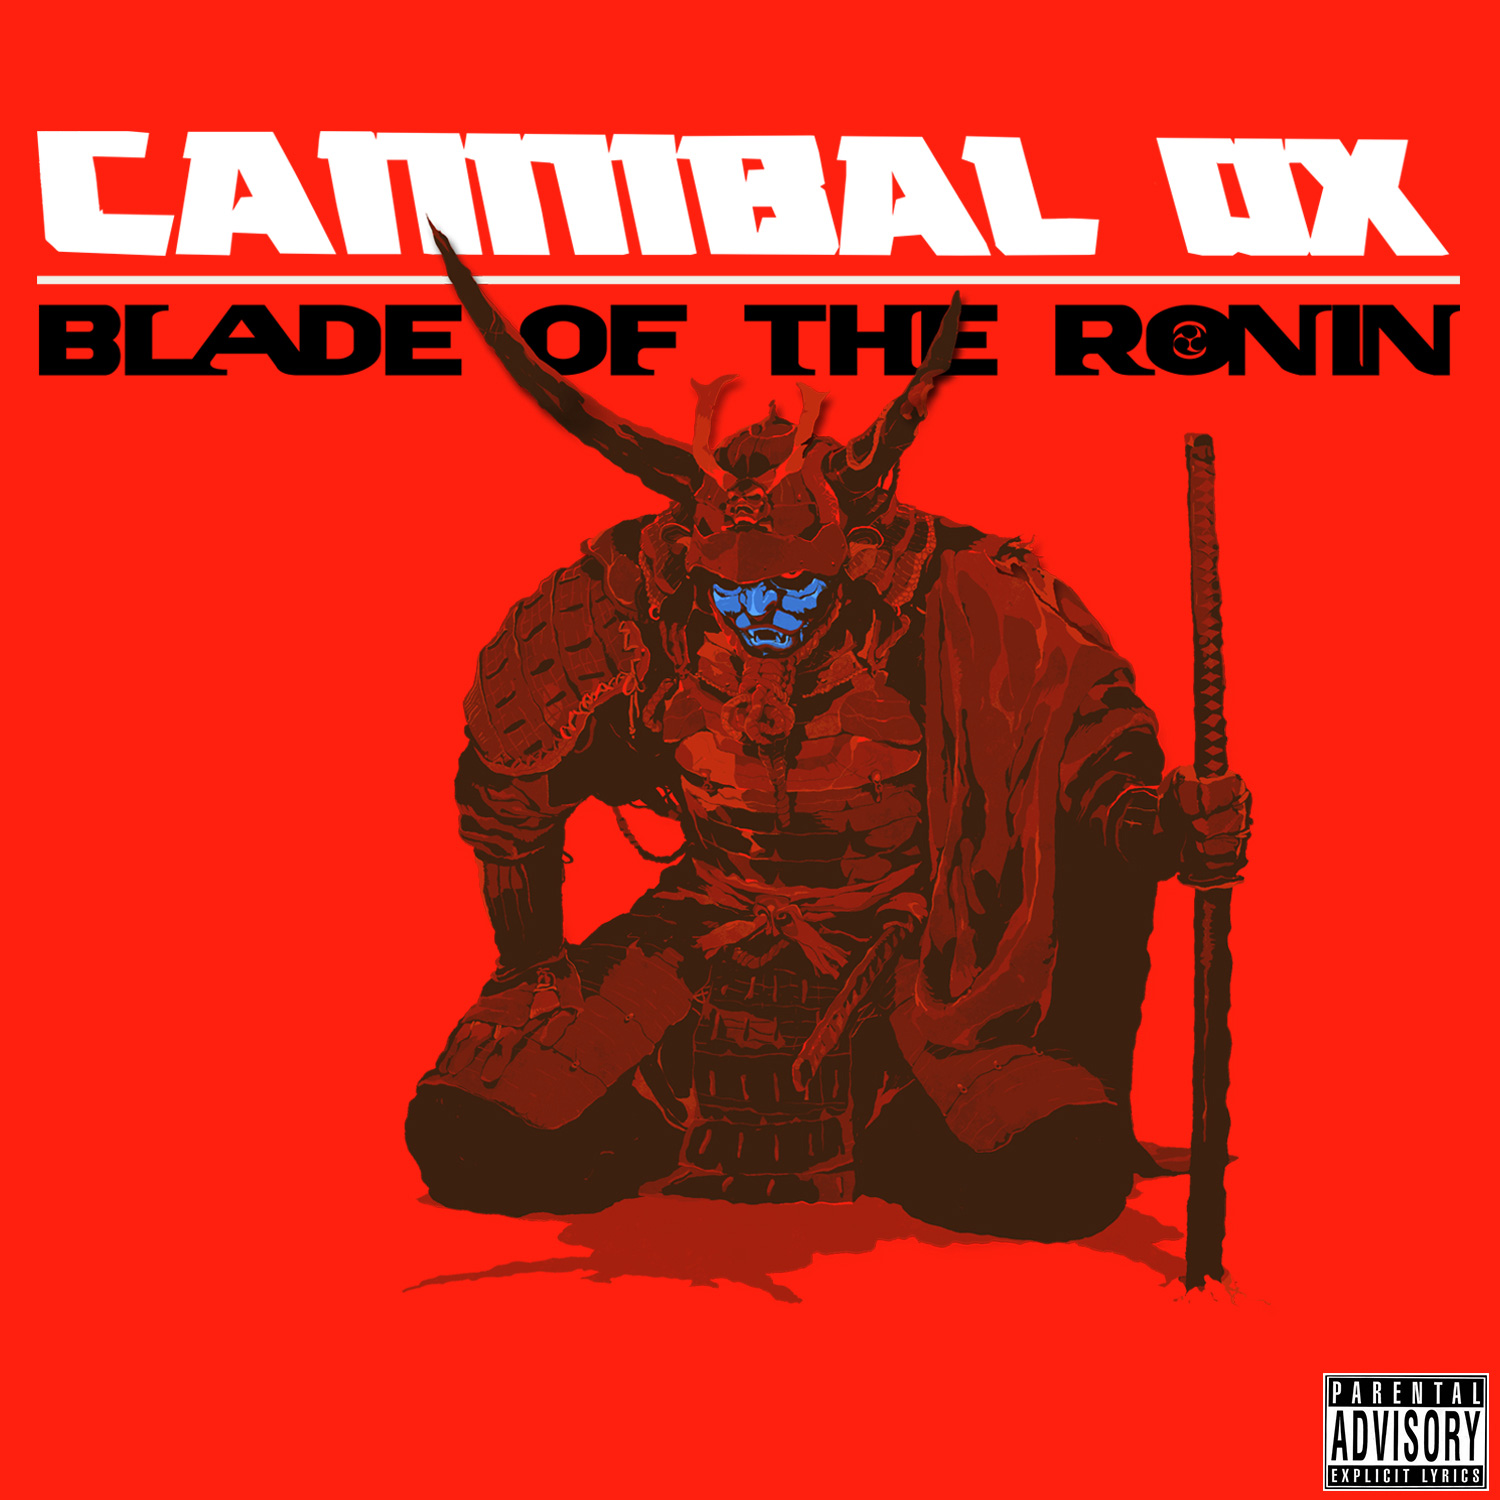 Cannibal Ox – Blade of the Ronin.